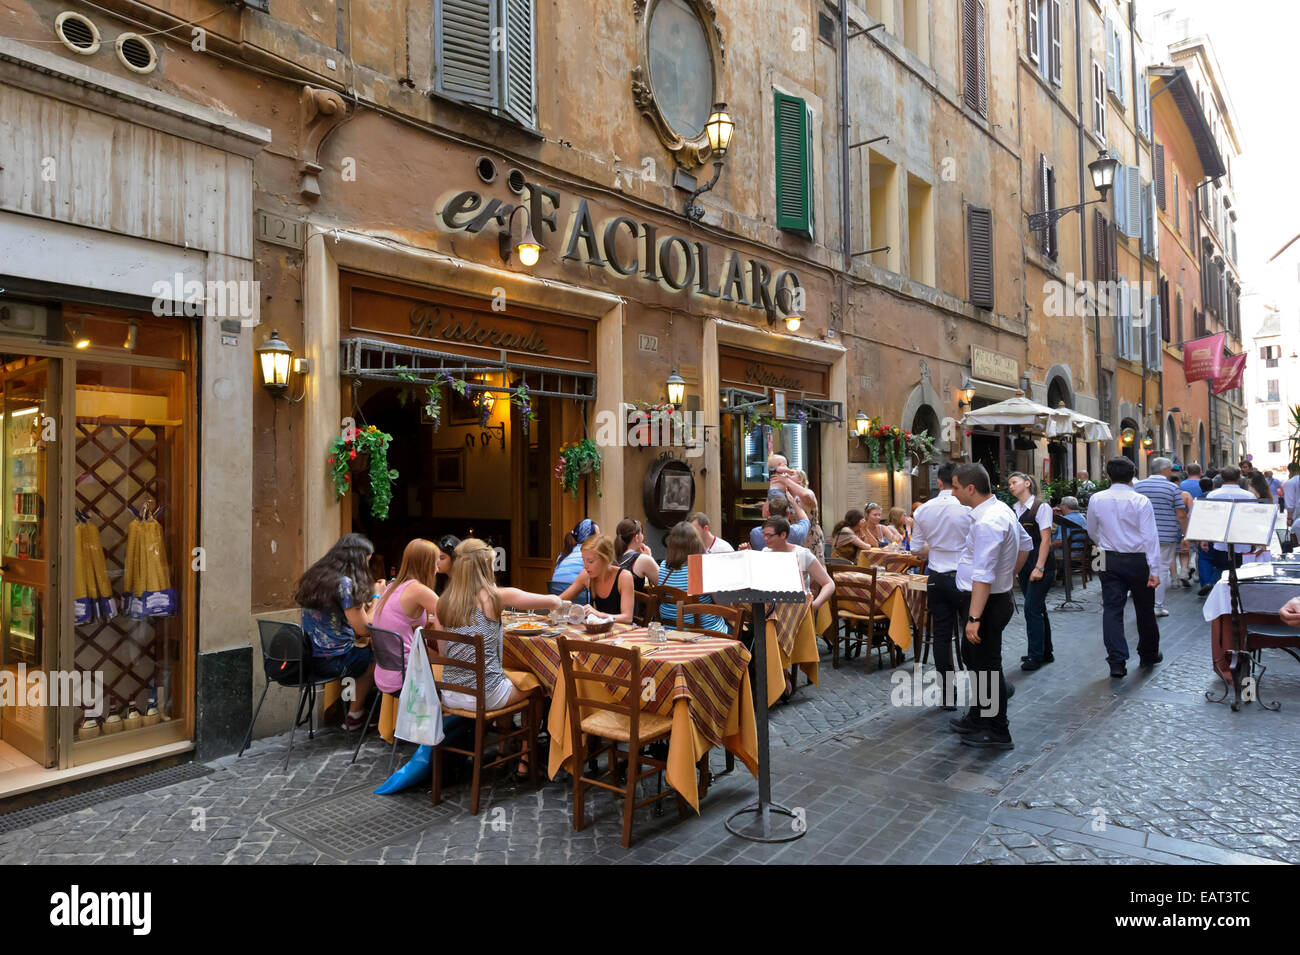 People Dining In Traditional Restaurants In Narrow Street In